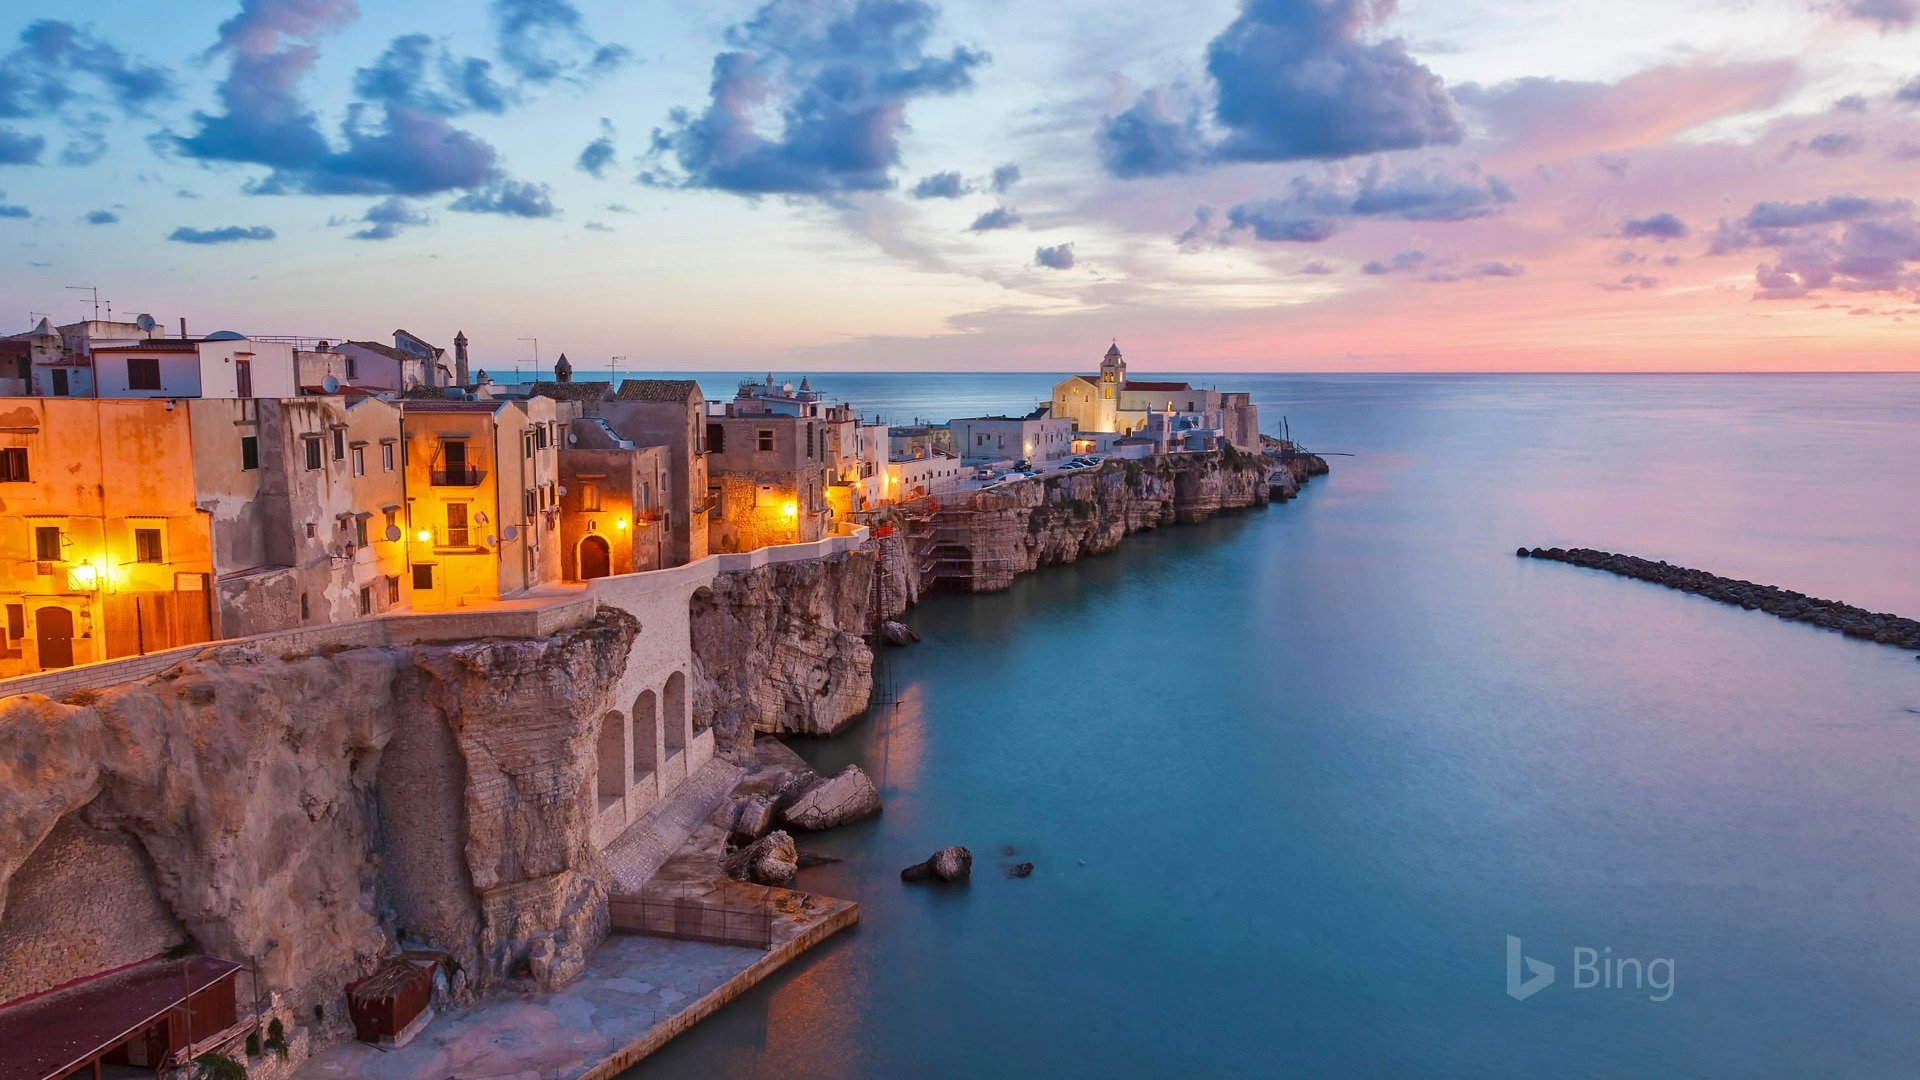 Apple Os X Lion Wallpaper Hd Vieste And The Adriatic Sea Italy 2017 Bing Wallpaper